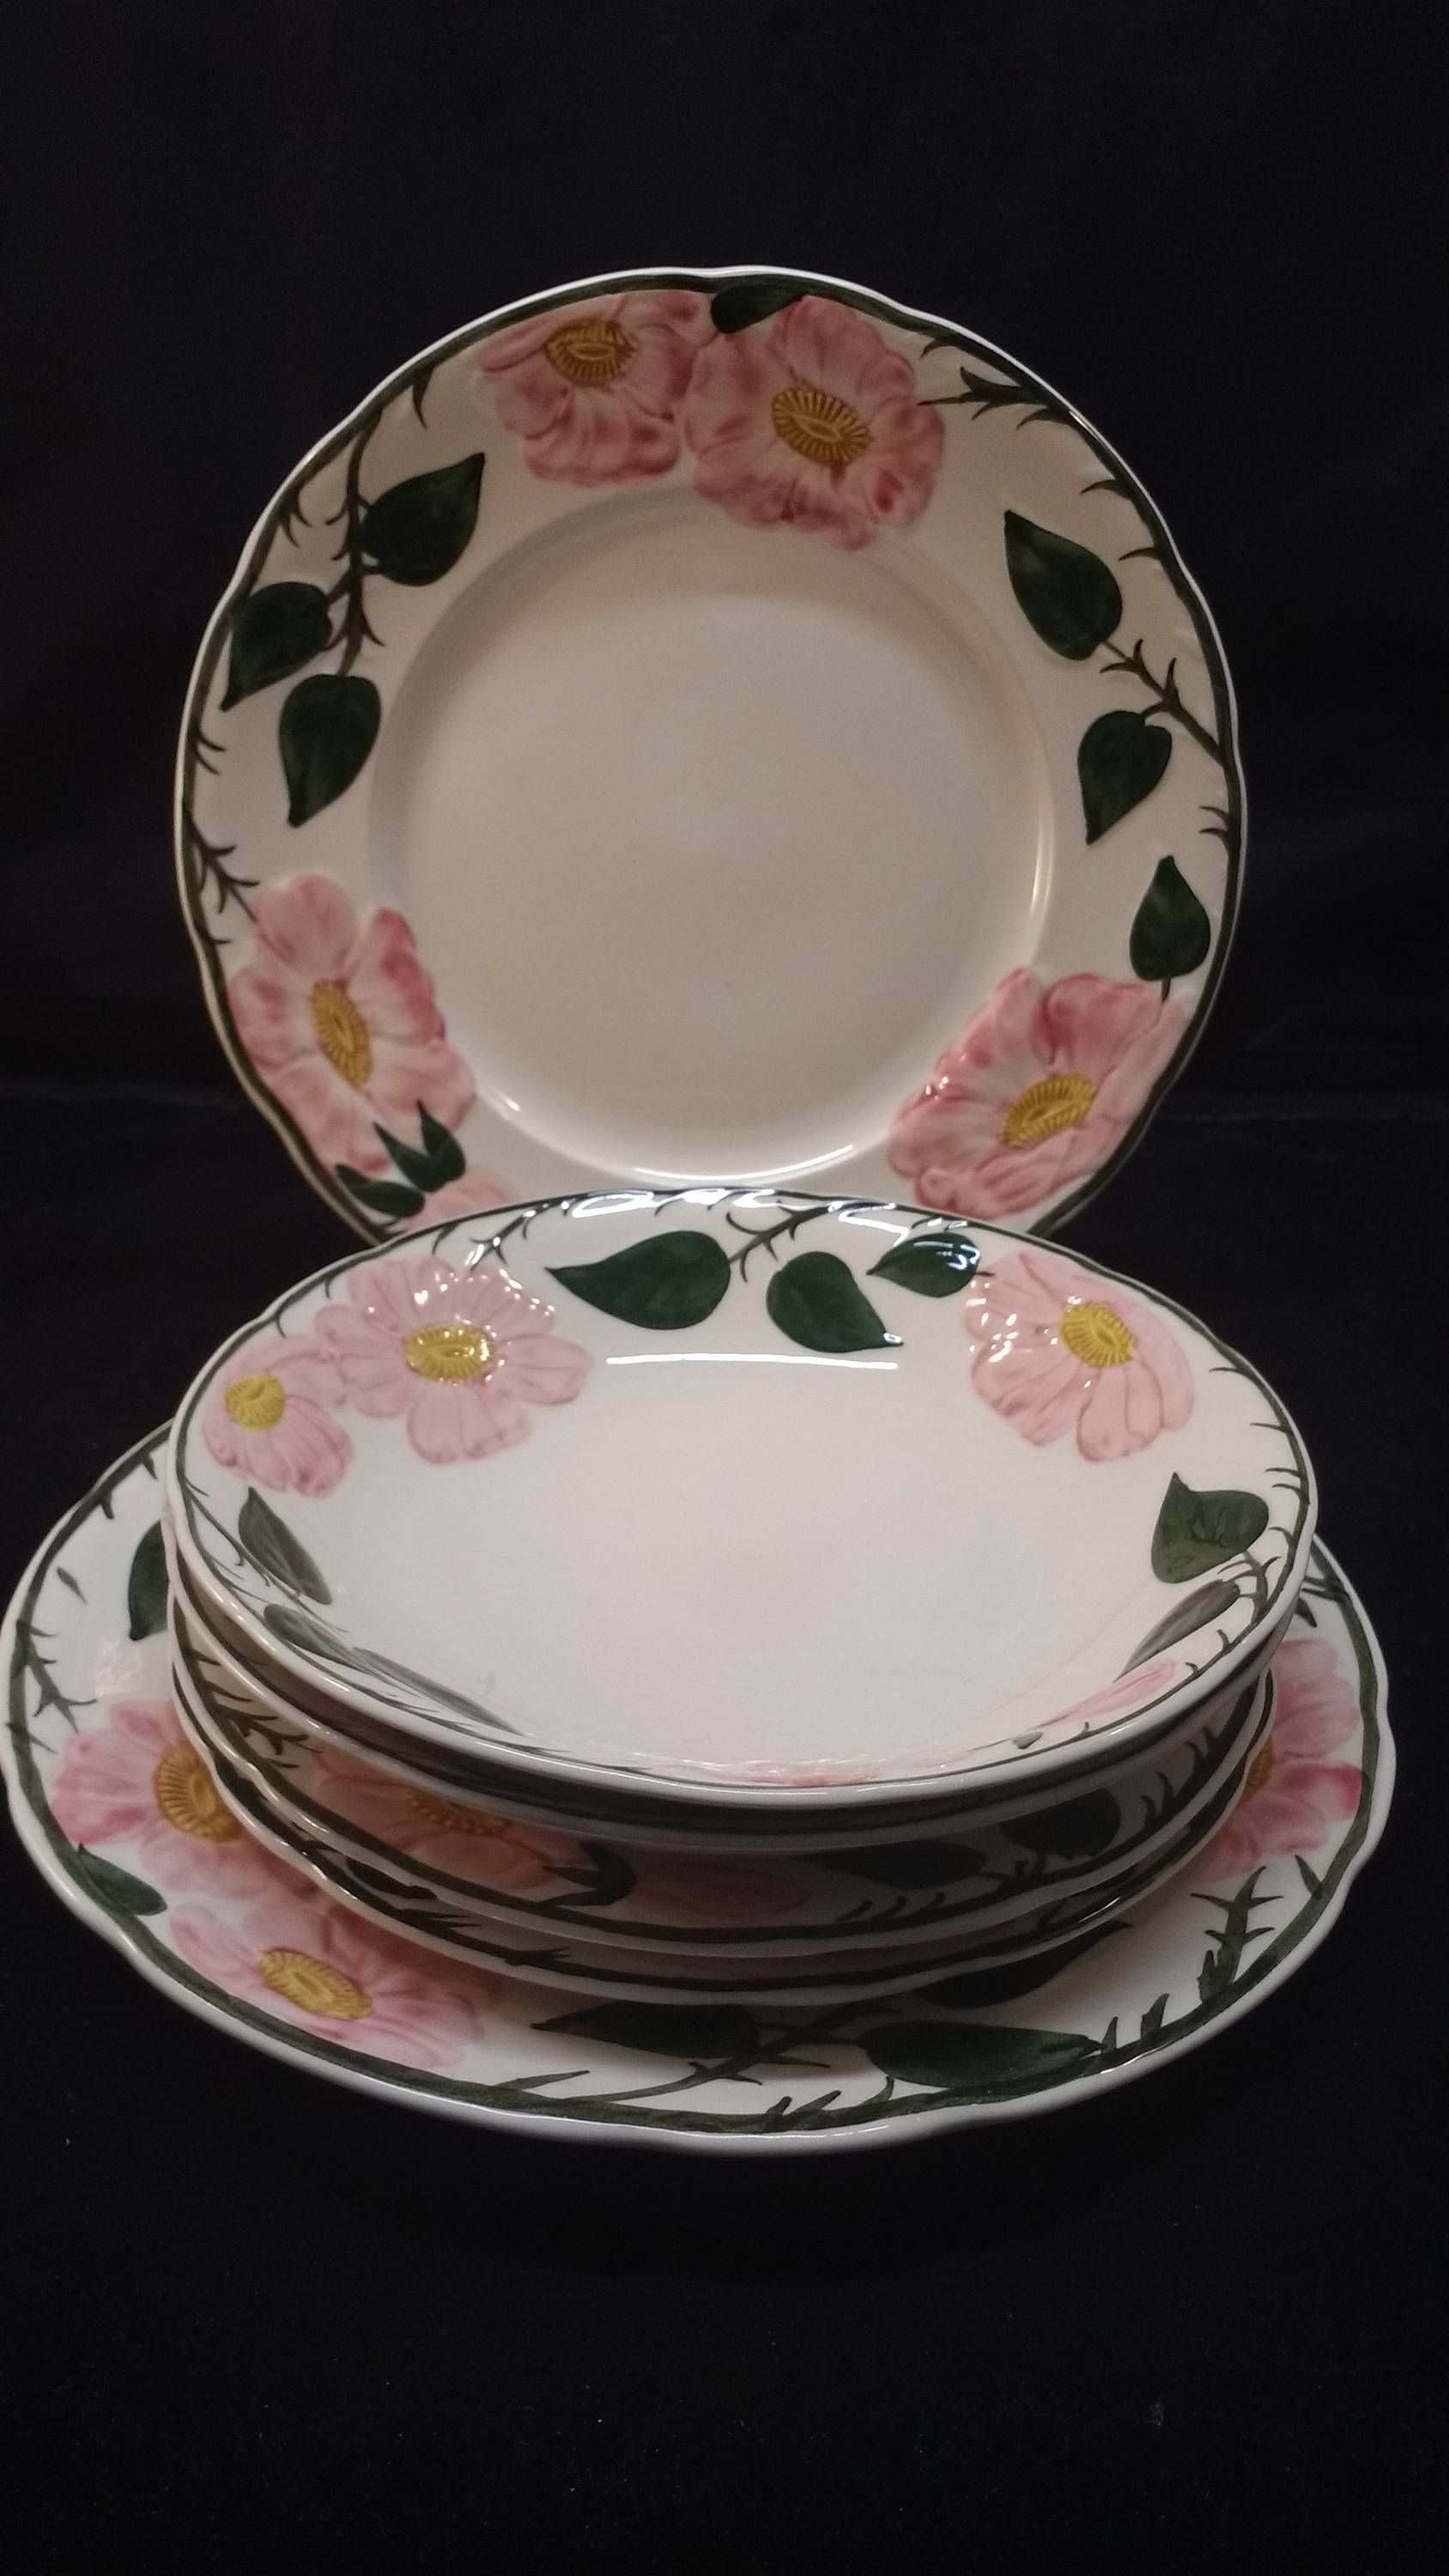 Vintage Wild Rose Pattern Villeroy And Boch Replacement Dishes Replacement Dishes Rose Dishes Unique Items Products